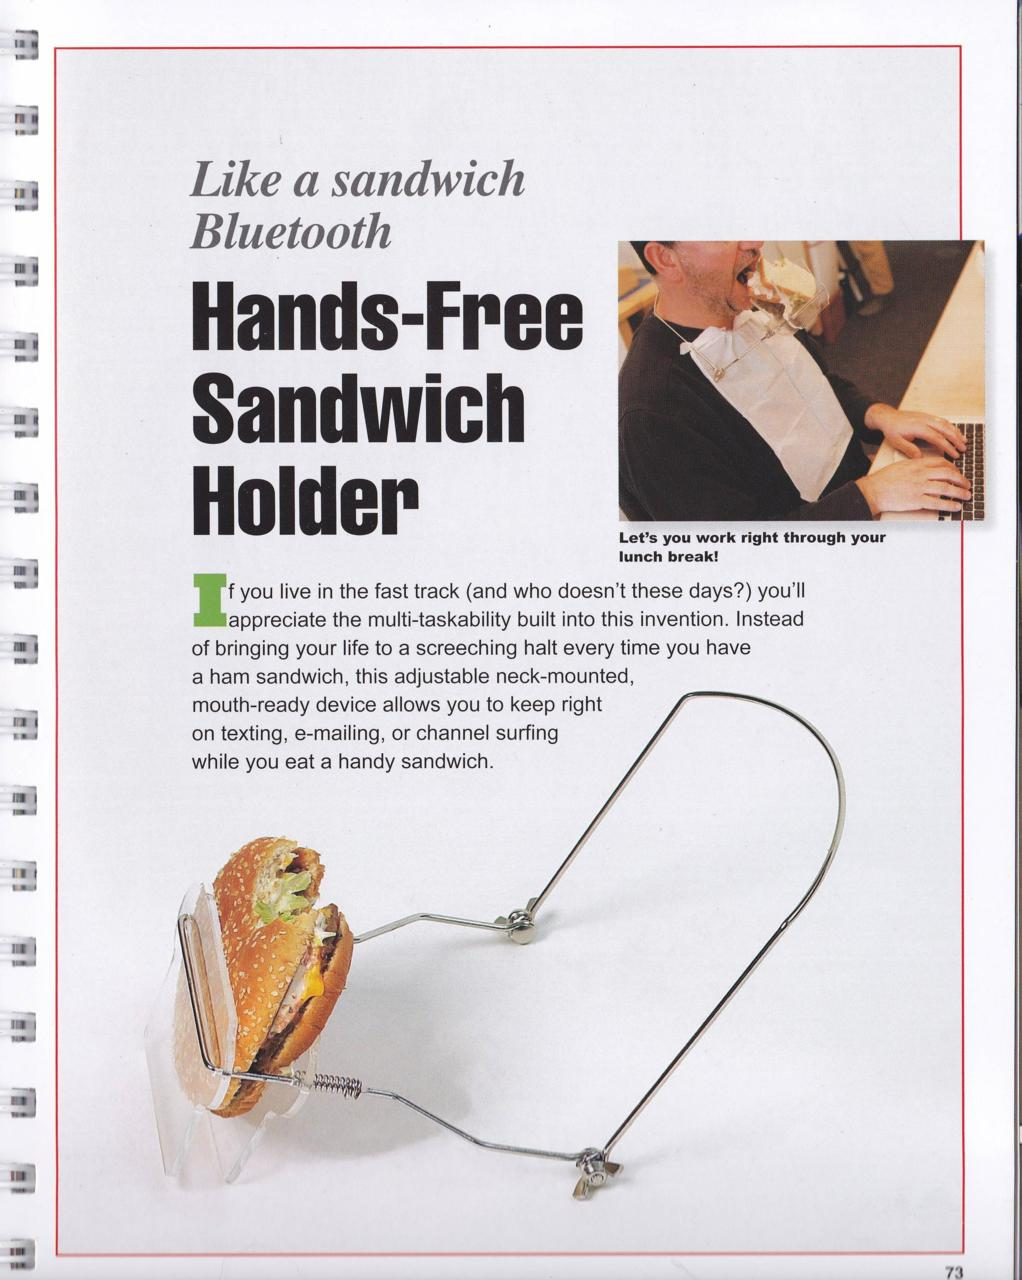 Hands-Free Sandwich Holder Concept Design